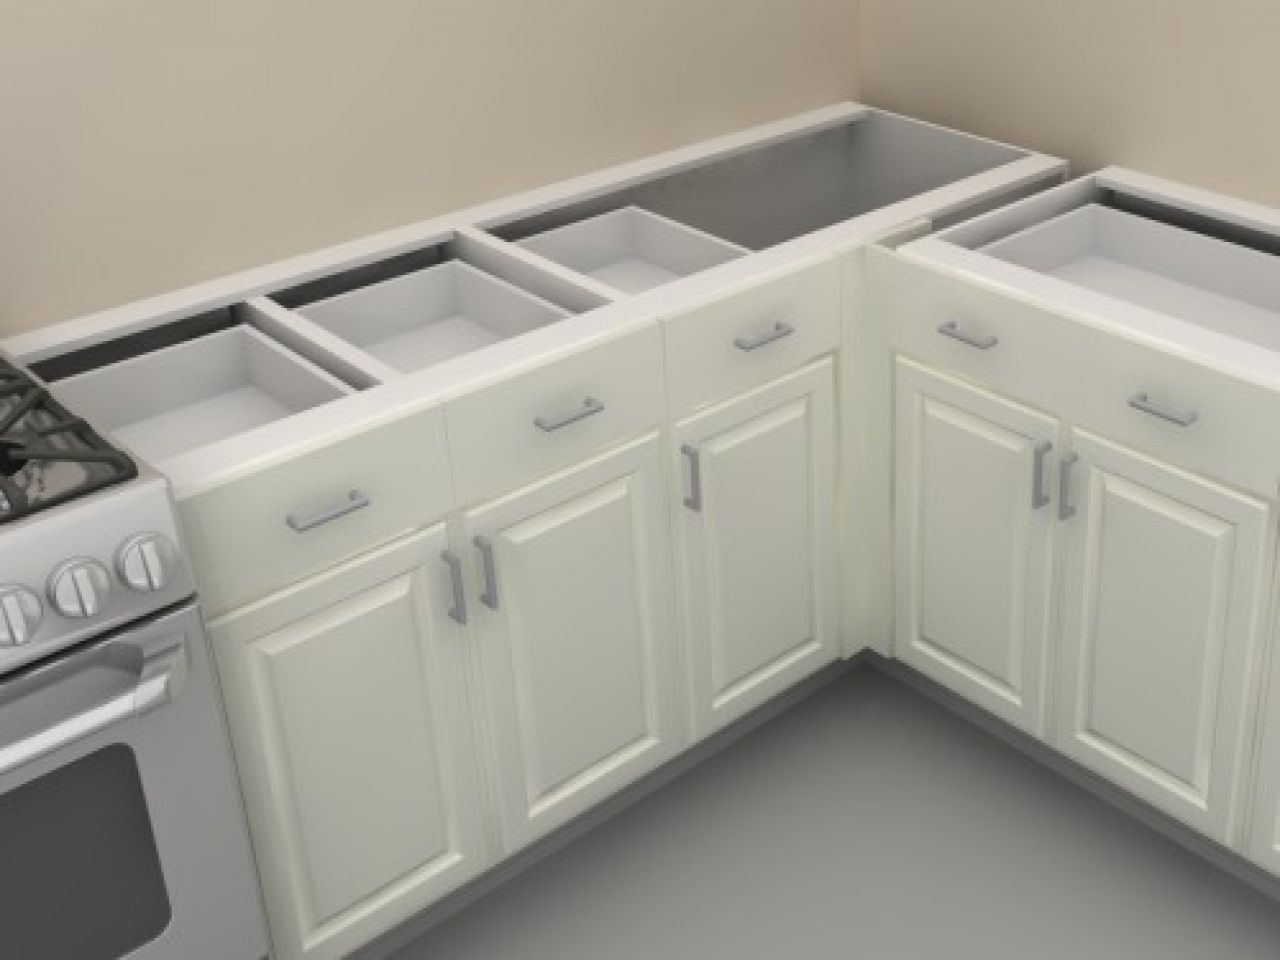 Upper Cabinet Blind Corner Base Kitchen Cabinets Ideas Hide Soffit Akurum Ikea Hackers Corner Kitchen Cabinet Kitchen Cabinet Sizes Ikea Corner Cabinet